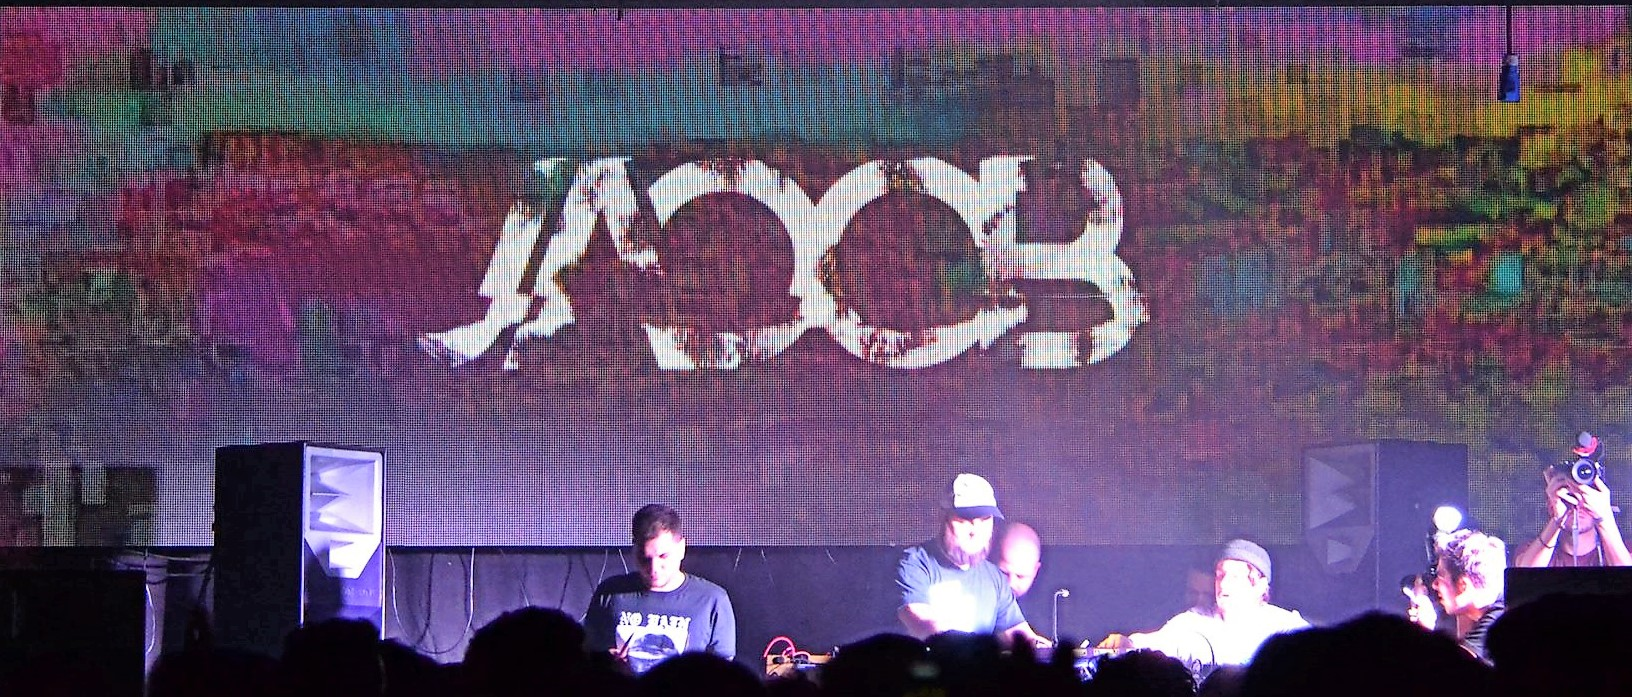 Jacob XXL Lyon Techno